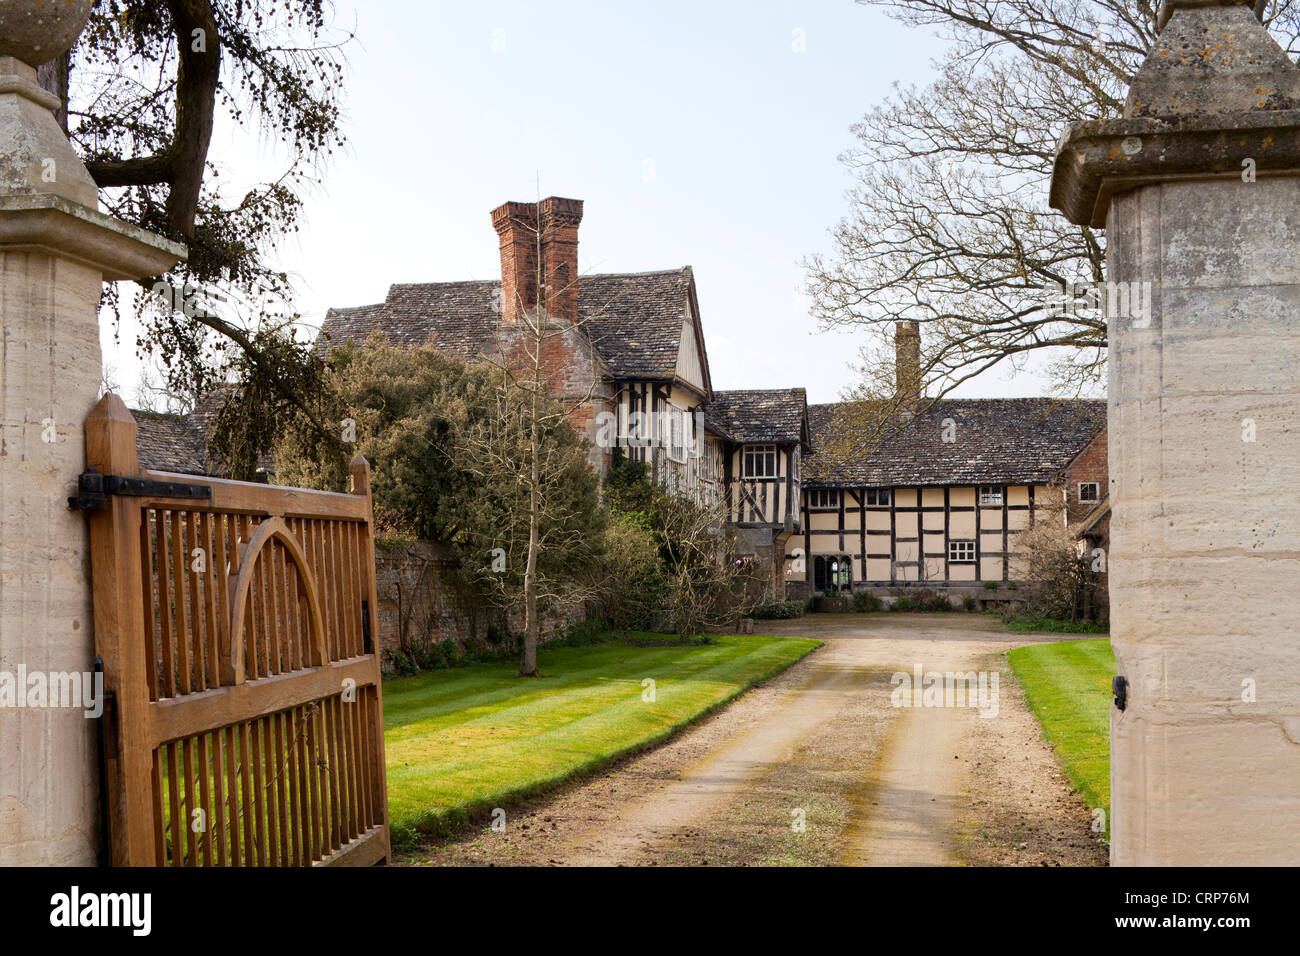 16th century Manor Farm, Frampton on Severn, Gloucestershire - birthplace of Jane Clifford, who was known as Fair - Stock Image